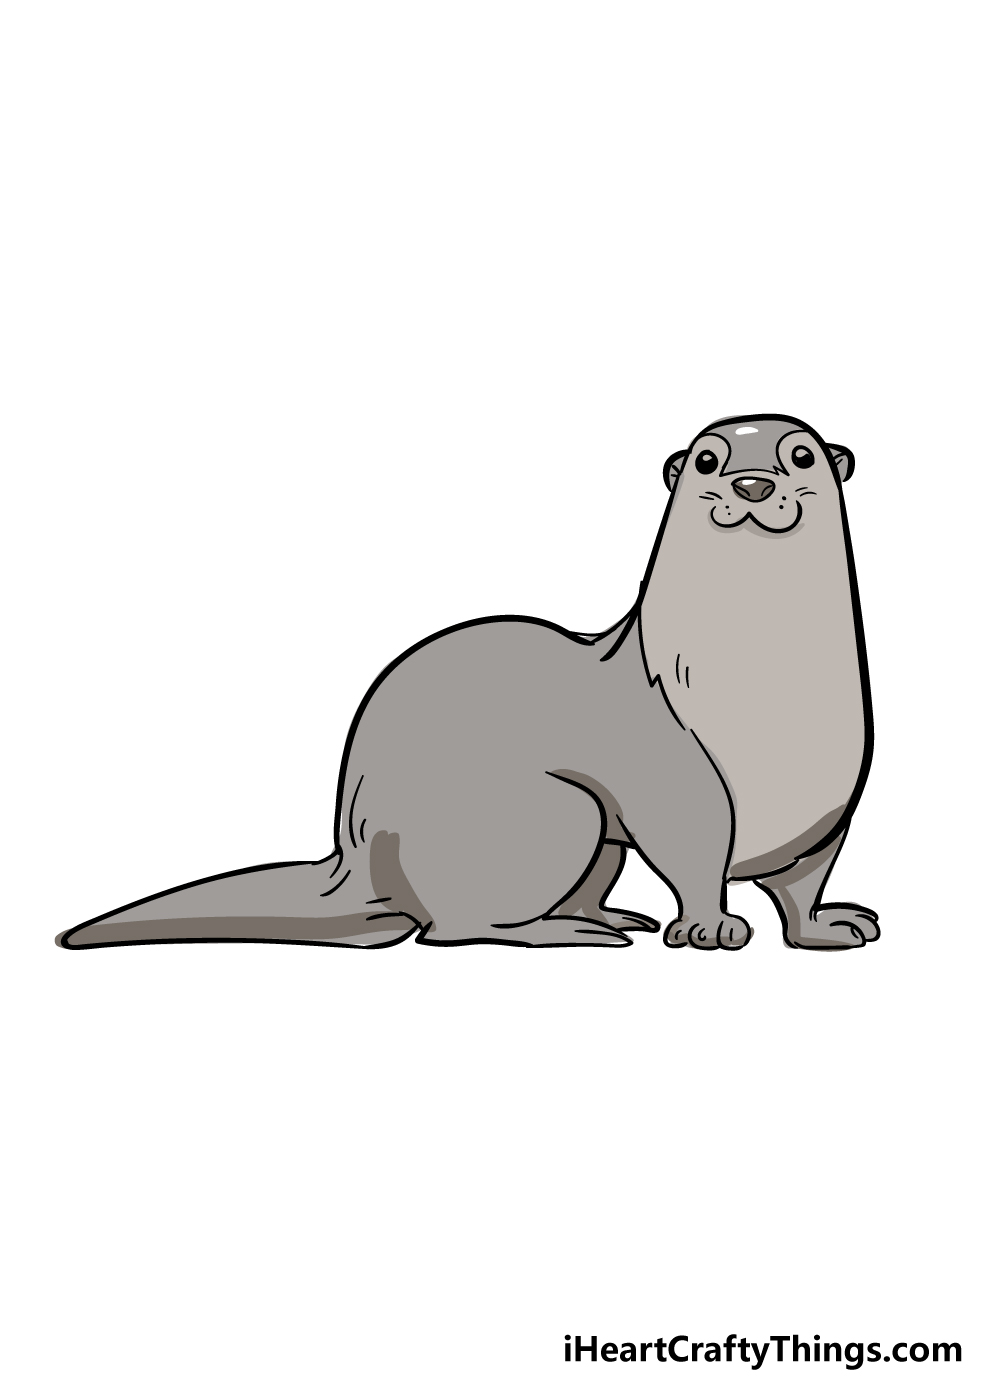 otter drawing step 6